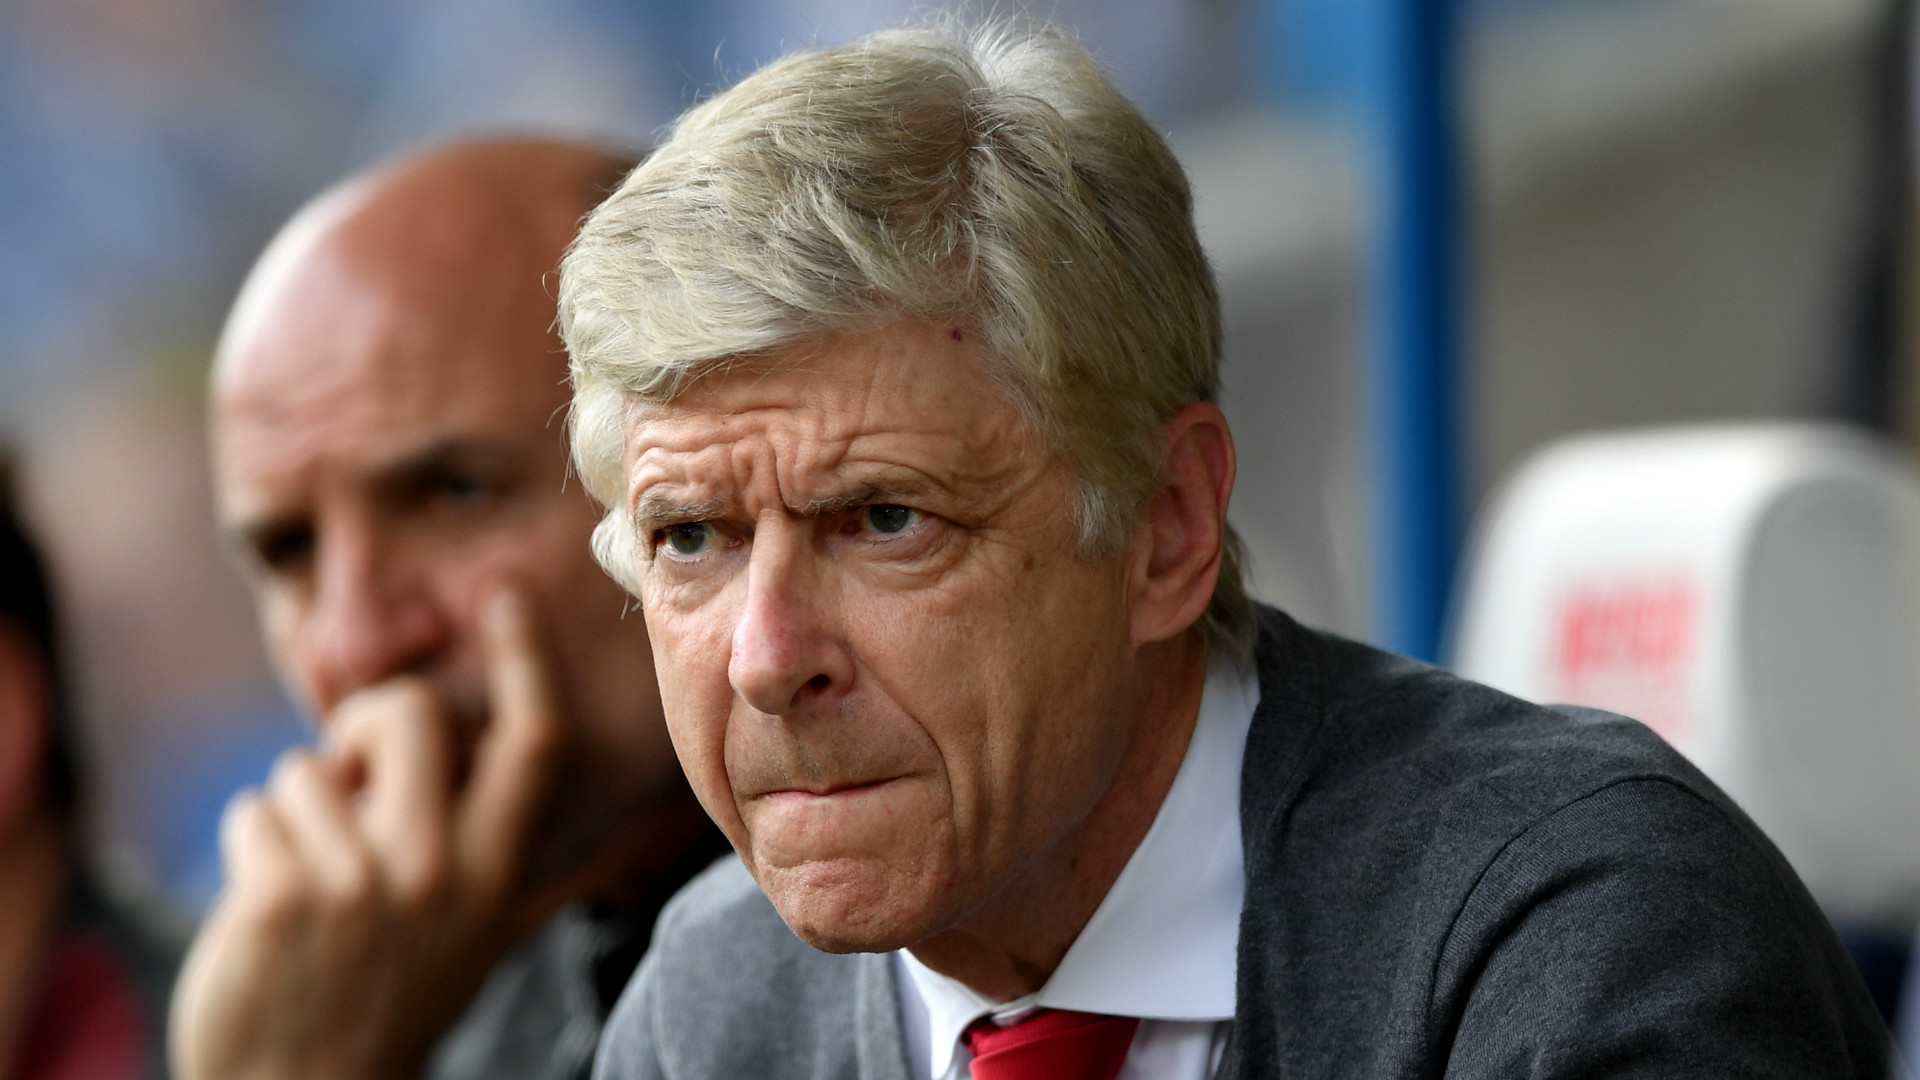 Bergkamp admits to doubting Wenger when Arsenal brought in unknown coach from Japan